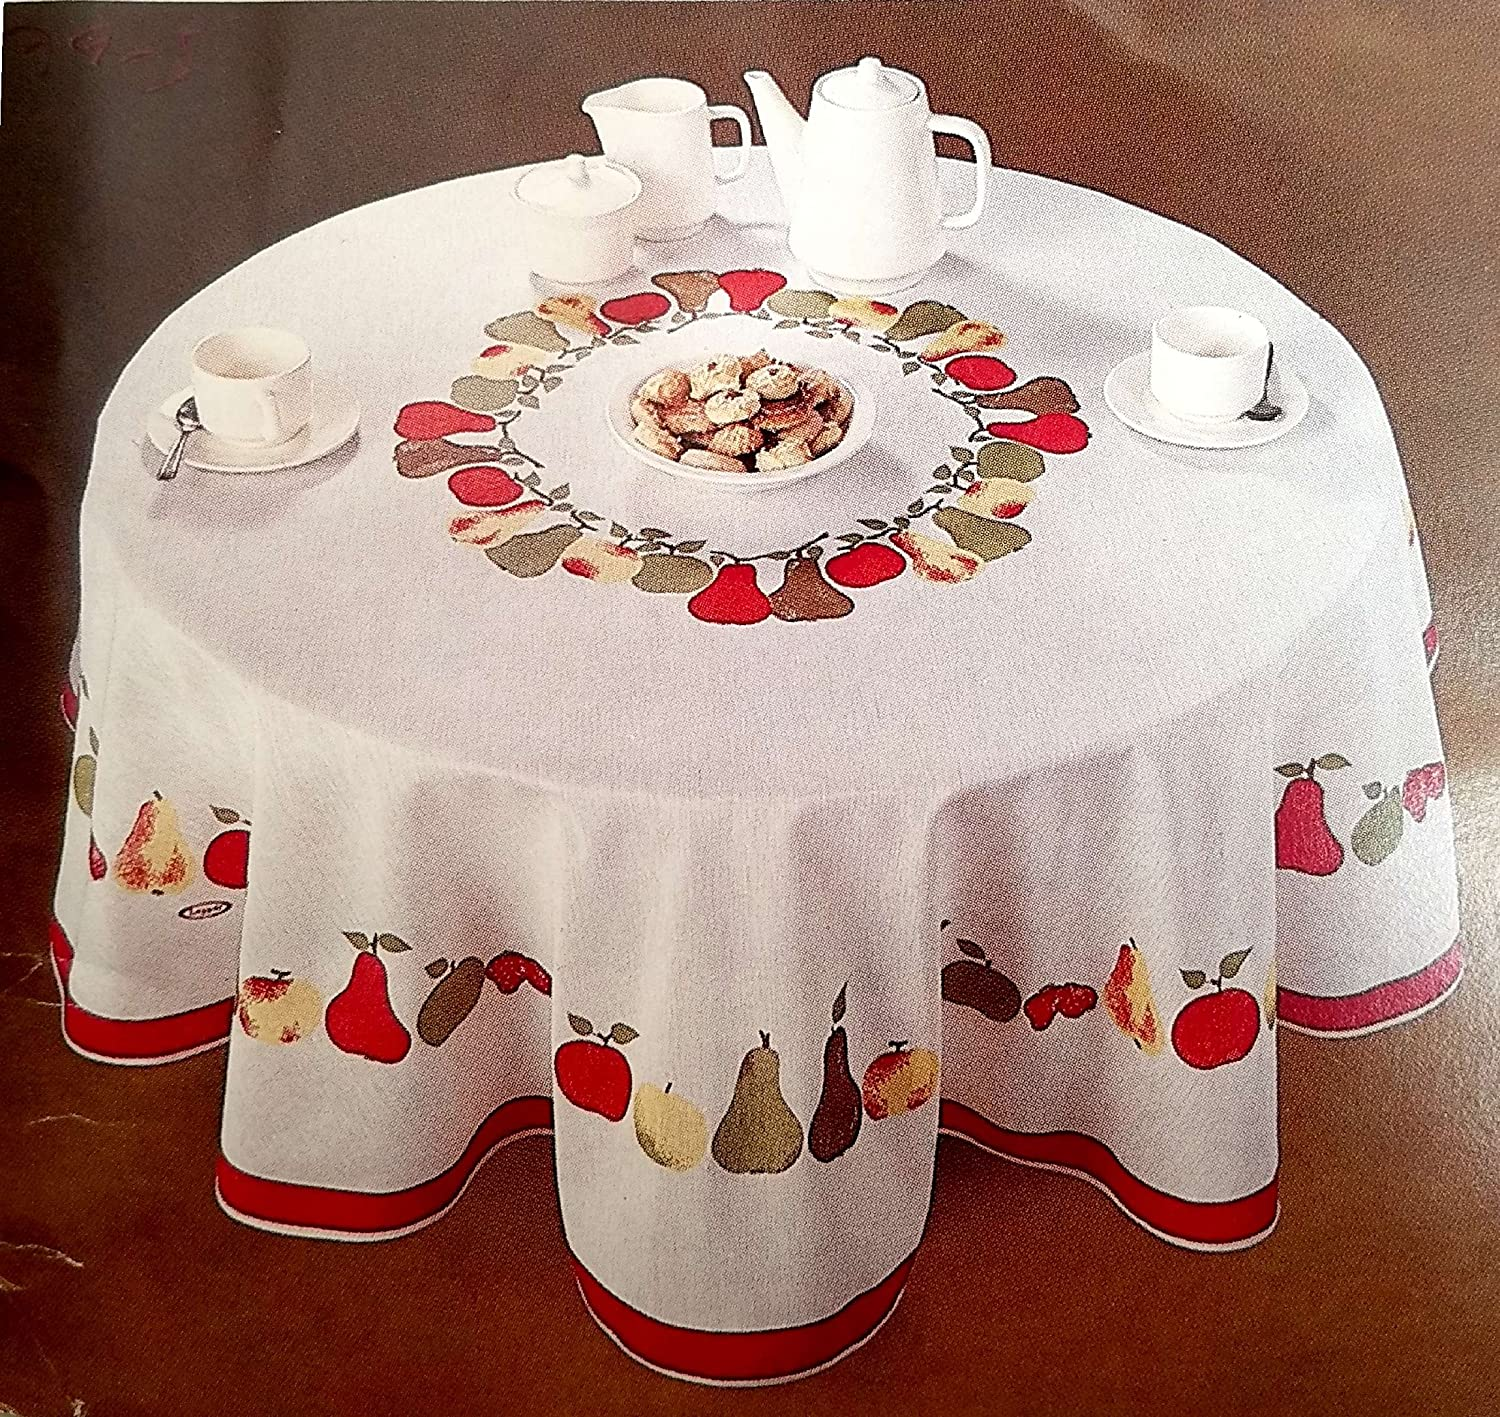 "AdonisUSA 61"" Round White Tablecloth with Fruit Design of Colorful Apples and Pears and red Rim on The Border"